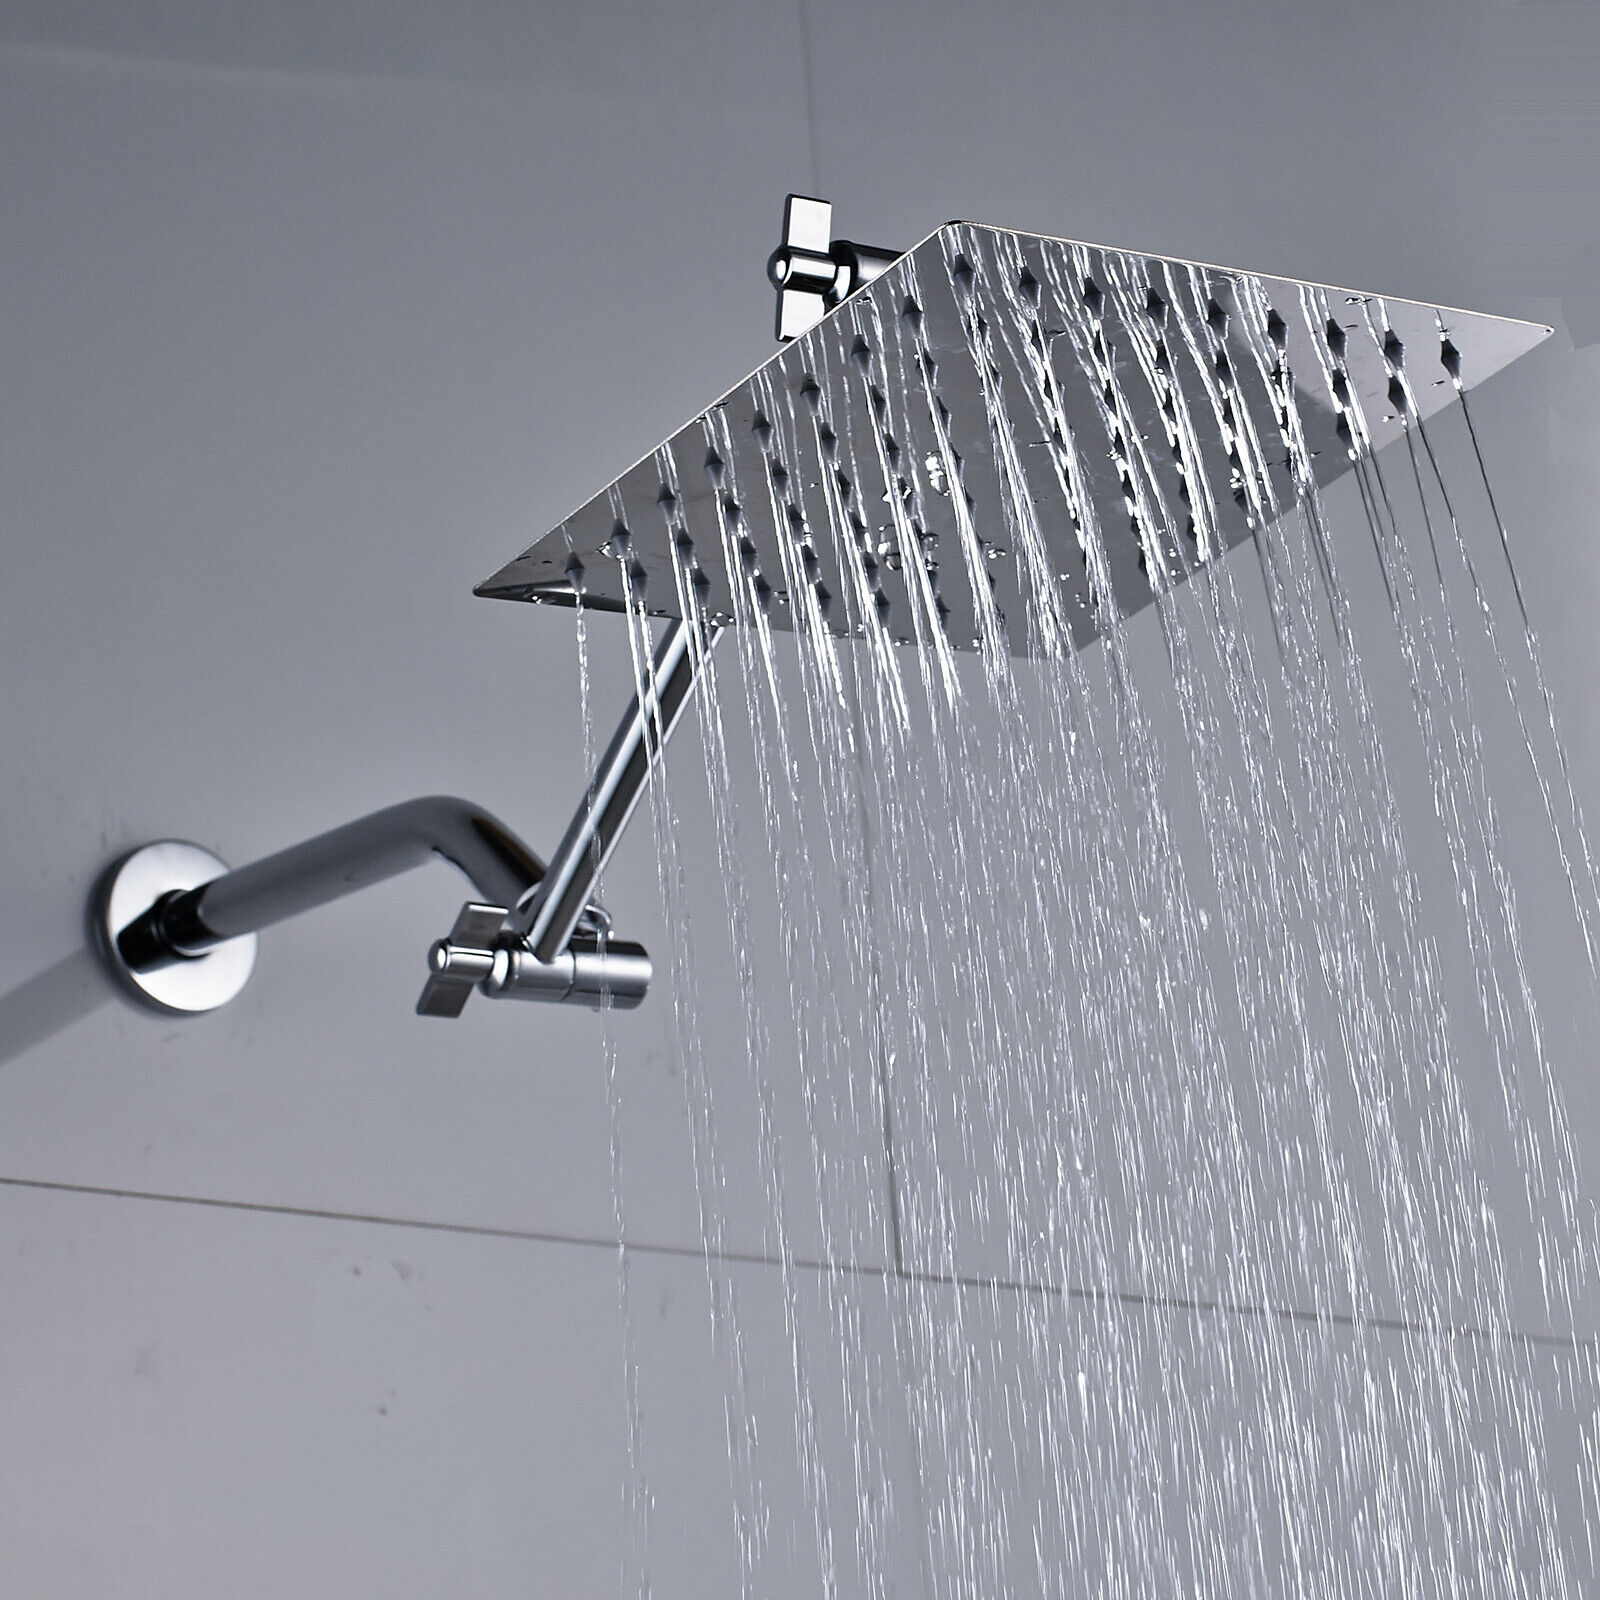 8 Inch Stainless Steel Square Rainfall Shower Head With Extension Arm Chrome